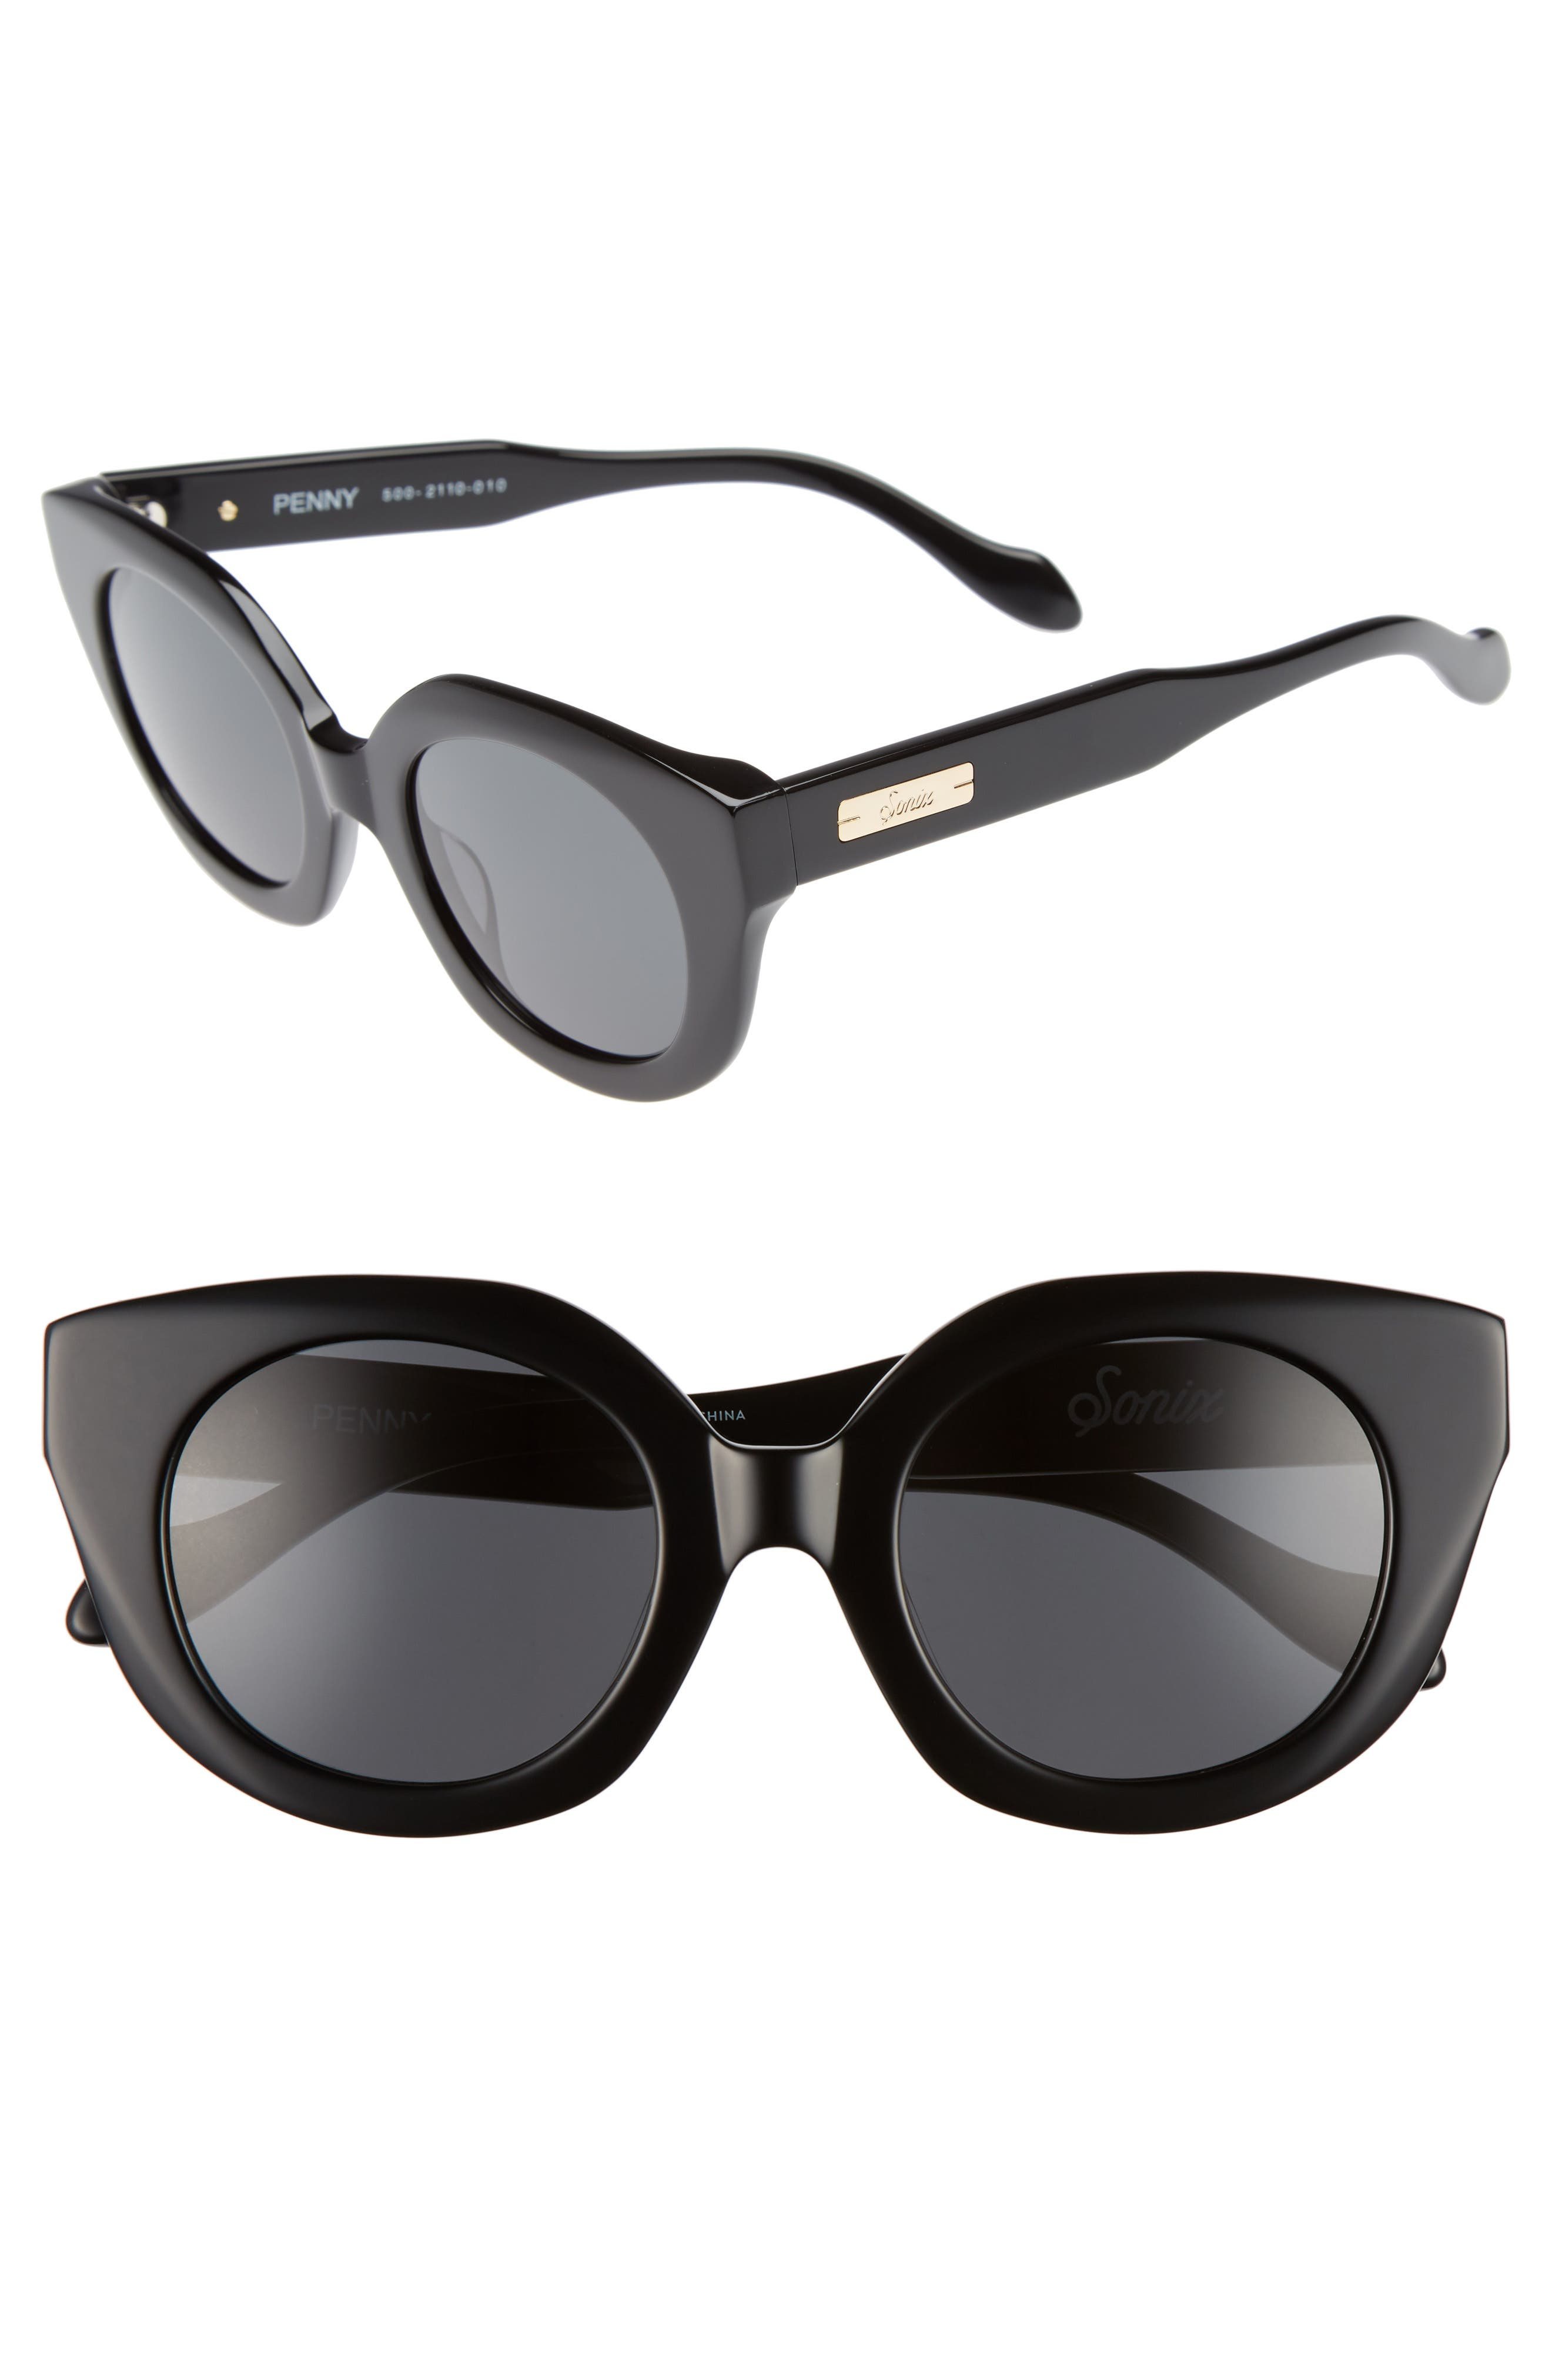 Penny 48mm Cat Eye Sunglasses,                             Main thumbnail 1, color,                             Black/ Black Solid